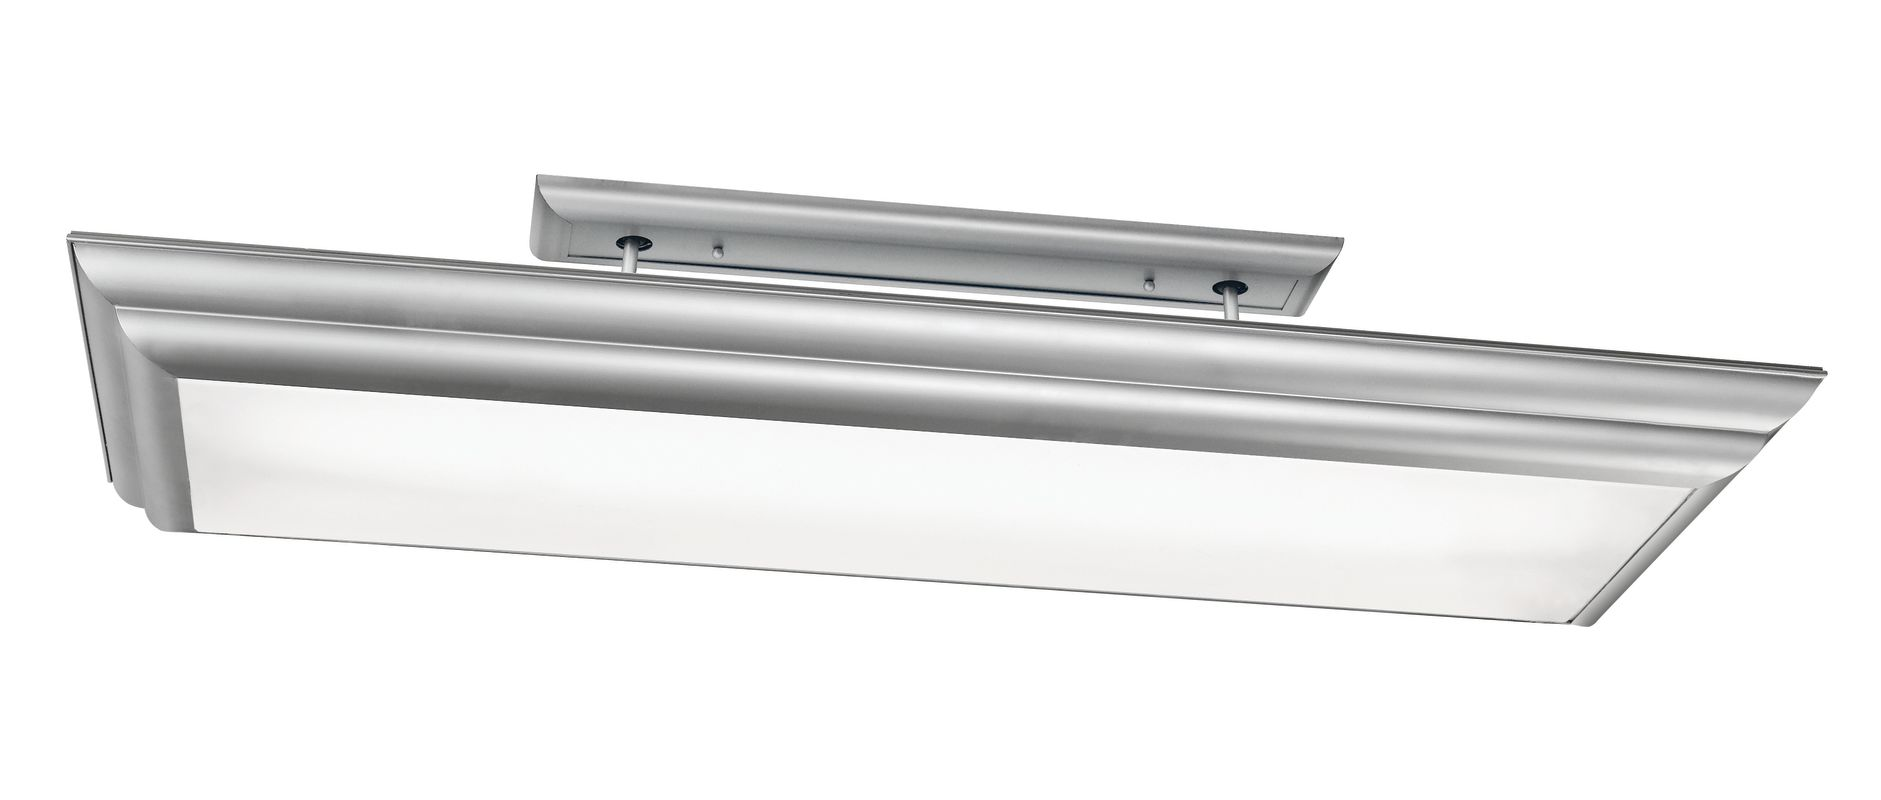 Kichler 10847 4 Light Fluorescent Linear Ceiling Fixture from the Sale $470.00 ITEM: bci1738872 ID#:10847SI UPC: 783927342957 :